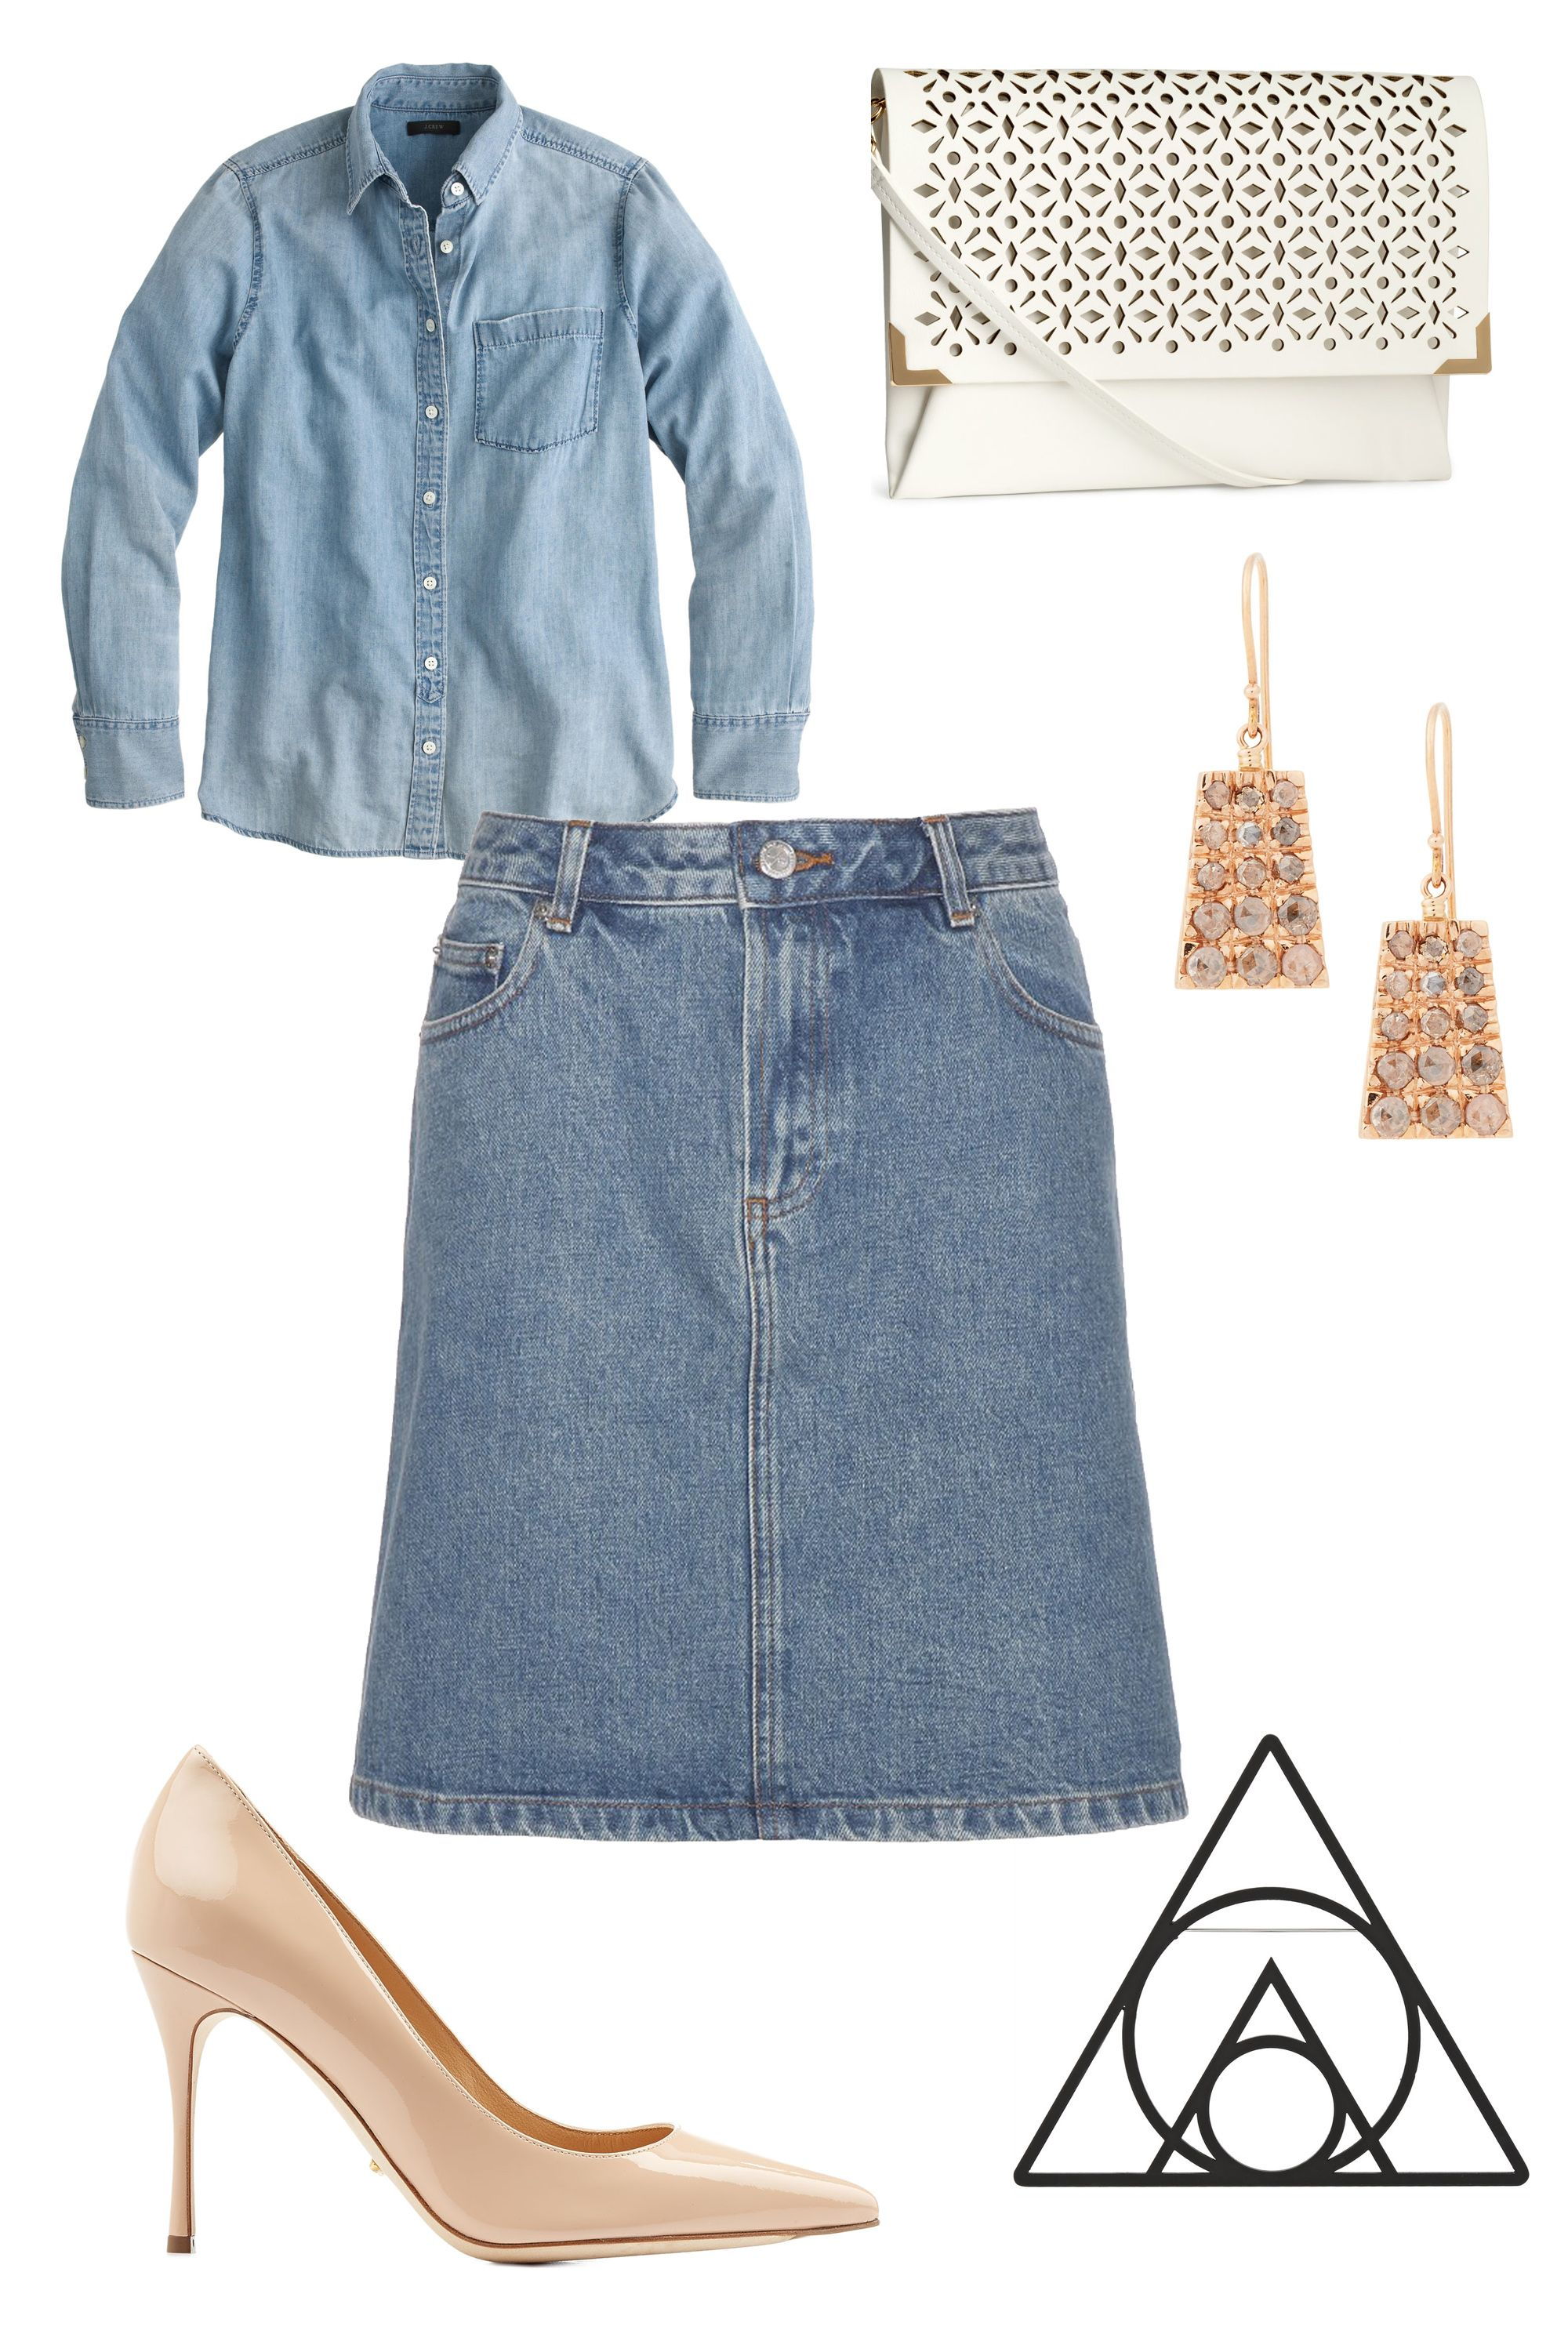 "A.P.C. Denim Skirt, $165; <a target=""_blank"" href=""http://www.mytheresa.com/en-us/denim-skirt.html"">mytheresa.com</a>  J.Crew Chambray Pocket Shirt, $78; <a target=""_blank"" href=""https://www.jcrew.com/womens_category/shirtsandtops/casualshirts/PRDOVR~C1159/C1159.jsp"">jcrew.com</a>  Sergio Rossi Pointed patent Leather Heels, $615; <a target=""_blank"" href=""http://www.stylebop.com/product_details.php?id=593002"">stylebop.com</a>  H&M Clutch Bag, $25; <a target=""_blank"" href=""http://www.hm.com/us/product/88590?article=88590-B"">hm.com</a>  Marc by Marc Jacobs Rubberized Geometric Brooch, $80; <a target=""_blank"" href=""http://www.net-a-porter.com/product/536430/Marc_by_Marc_Jacobs/rubberized-geometric-brooch"">net-a-porter.com</a>  Frabrizio Riva Brown Diamond & Rose Gold Rectangular Drop Earrings, $1,200; <a target=""_blank"" href=""http://www.barneys.com/fabrizio-riva-brown-diamond-%26-rose-gold-rectangluar-drop-earrings-500380886.html#start=85&sz=48"">barneys.com</a>"